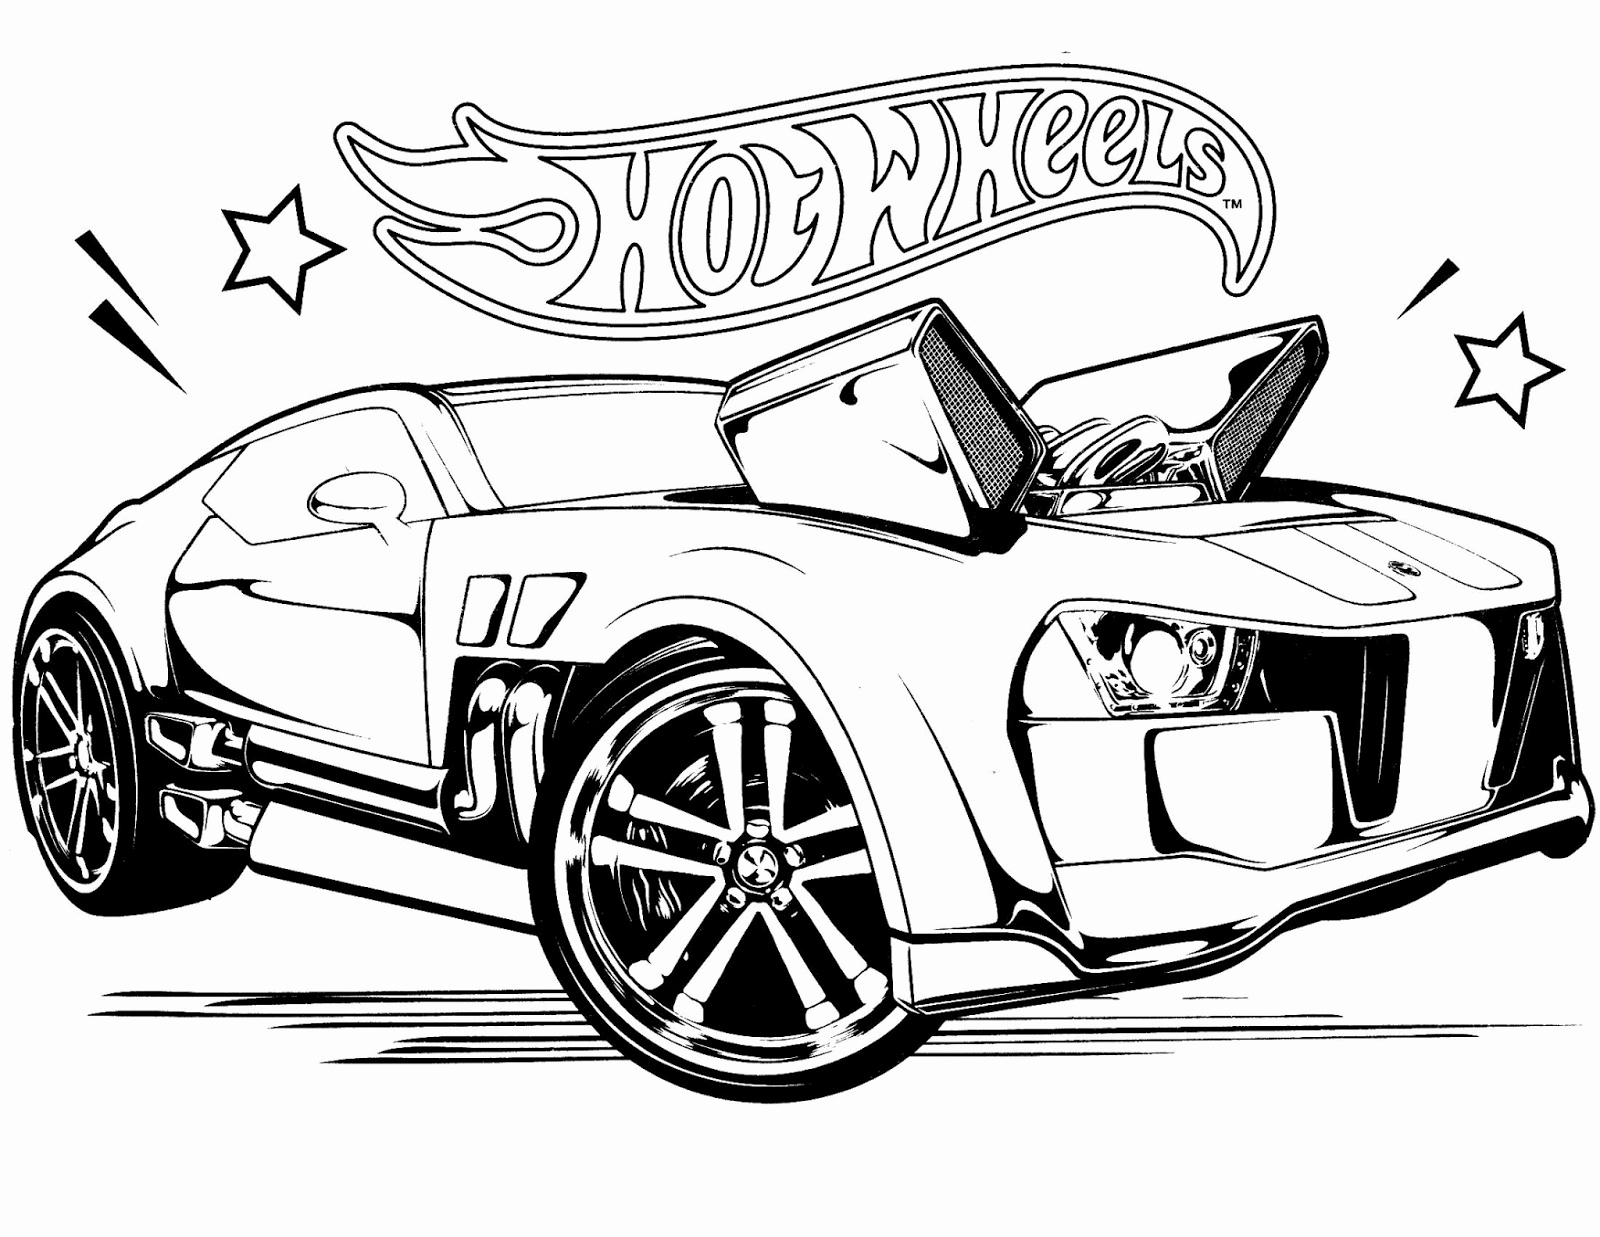 hot rod coloring sheets hot rod coloring pages to print download free coloring rod sheets coloring hot